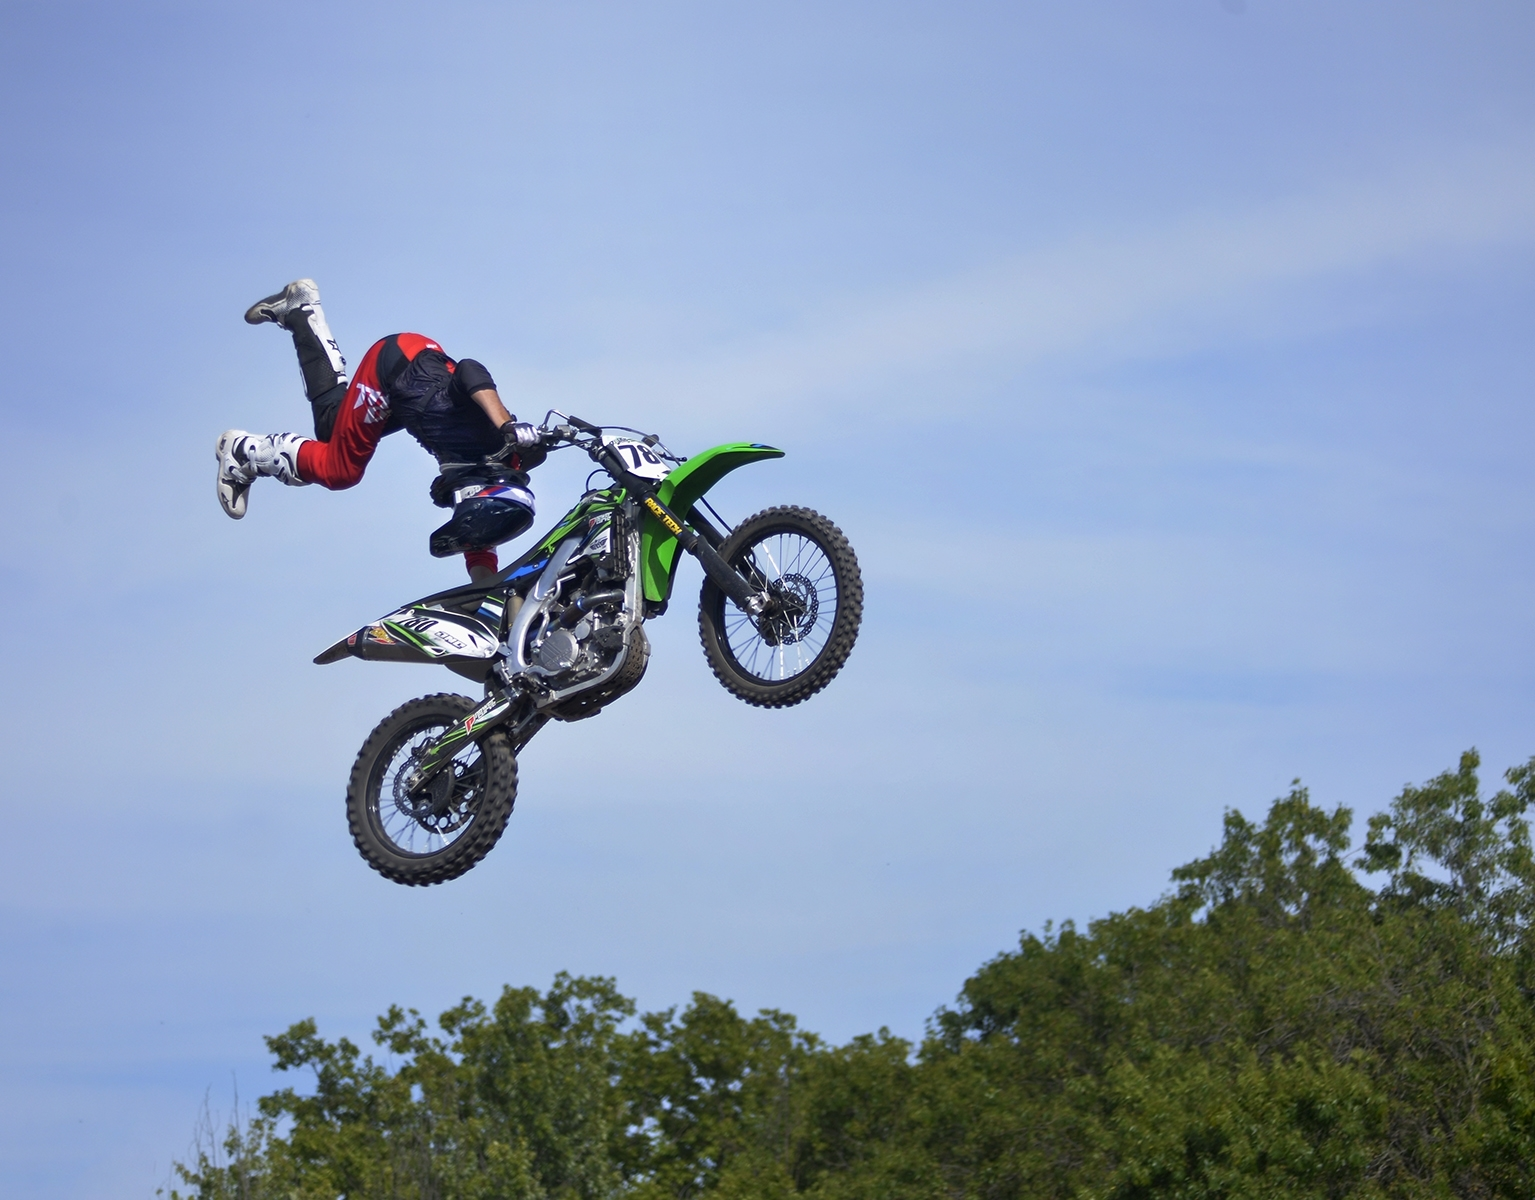 'Motorcross Tricks at the Alameda Fair, Staring the Trick' (JM 1 Place) by Jane Postiglione - CC